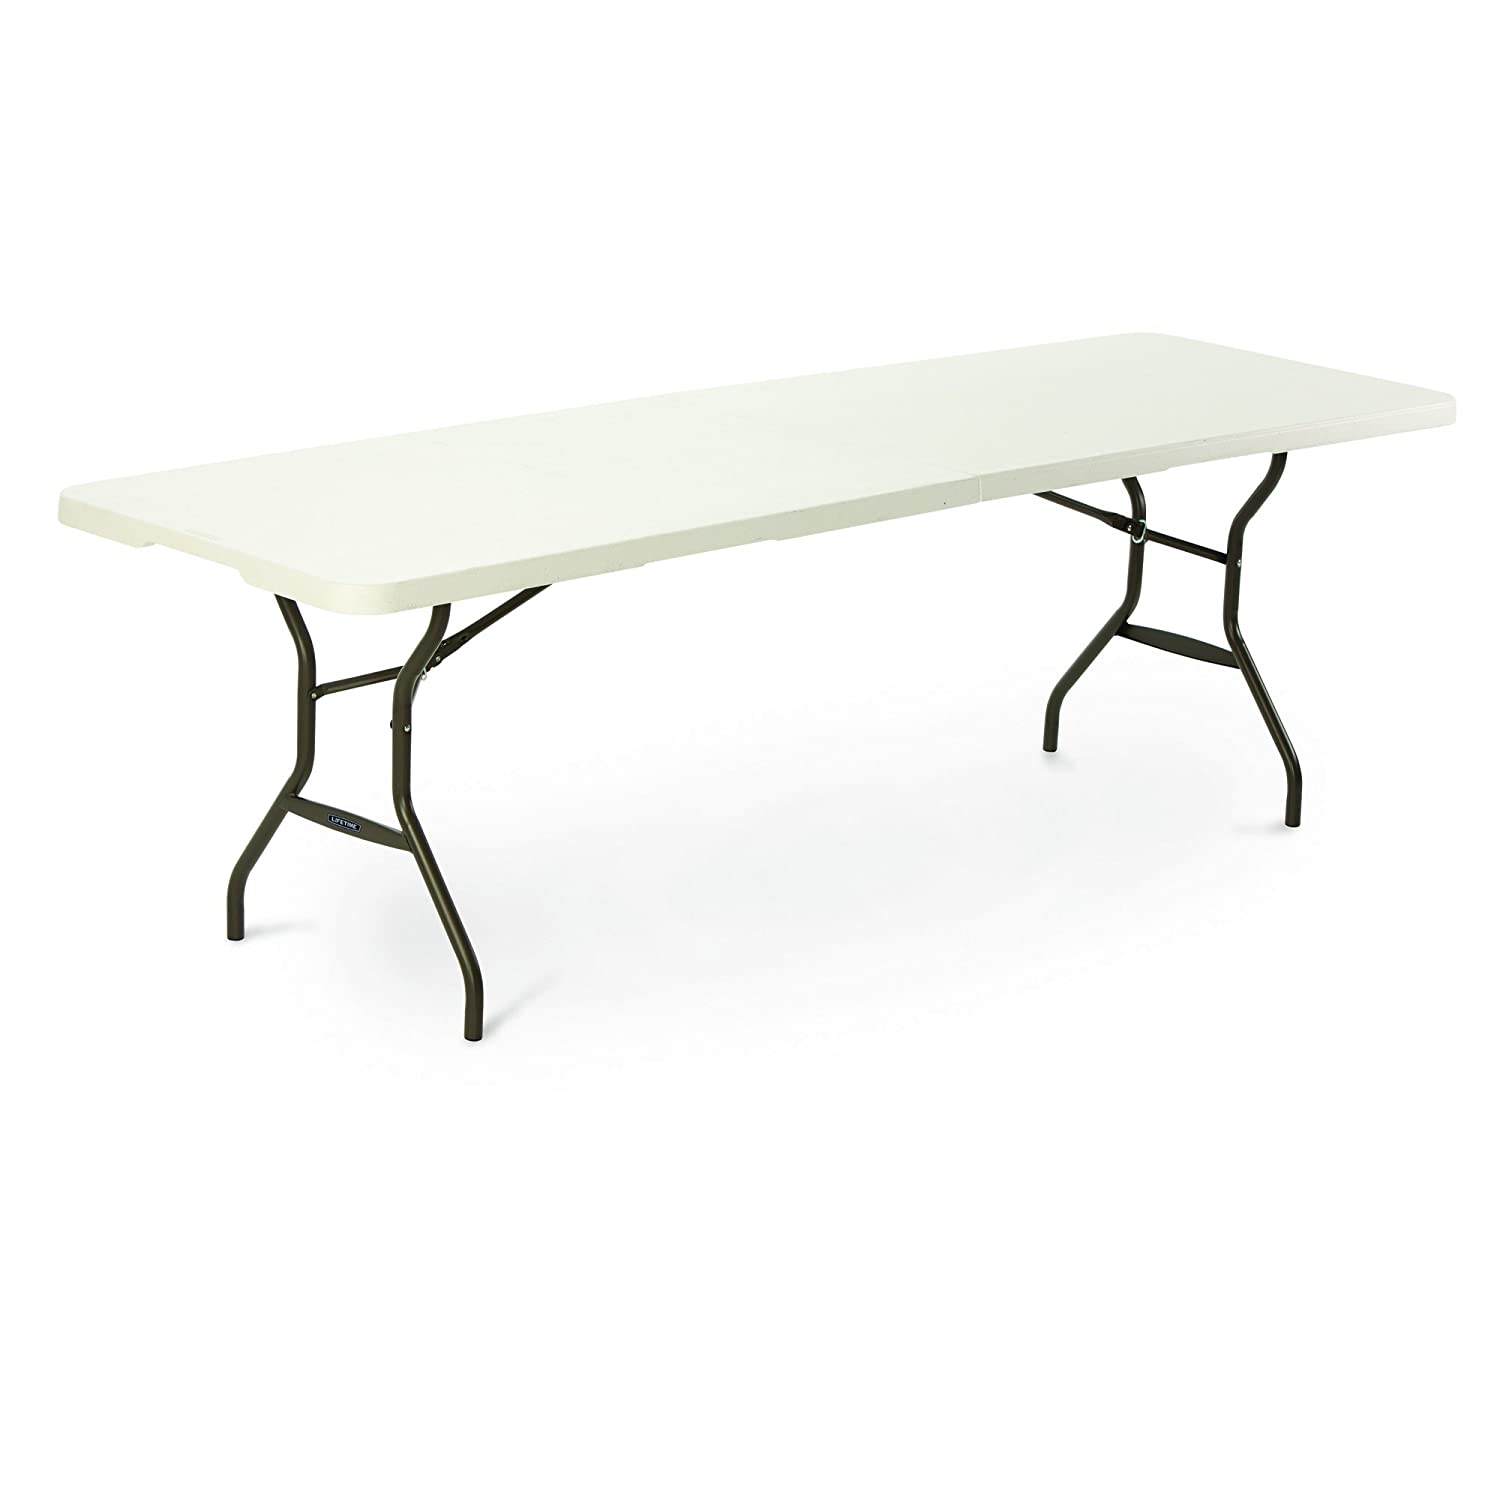 400 Kg Load Capacity with Steel Securing Pins Folding Tables UK Rectangular Plastic Top Fold in Half Table 8-Foot